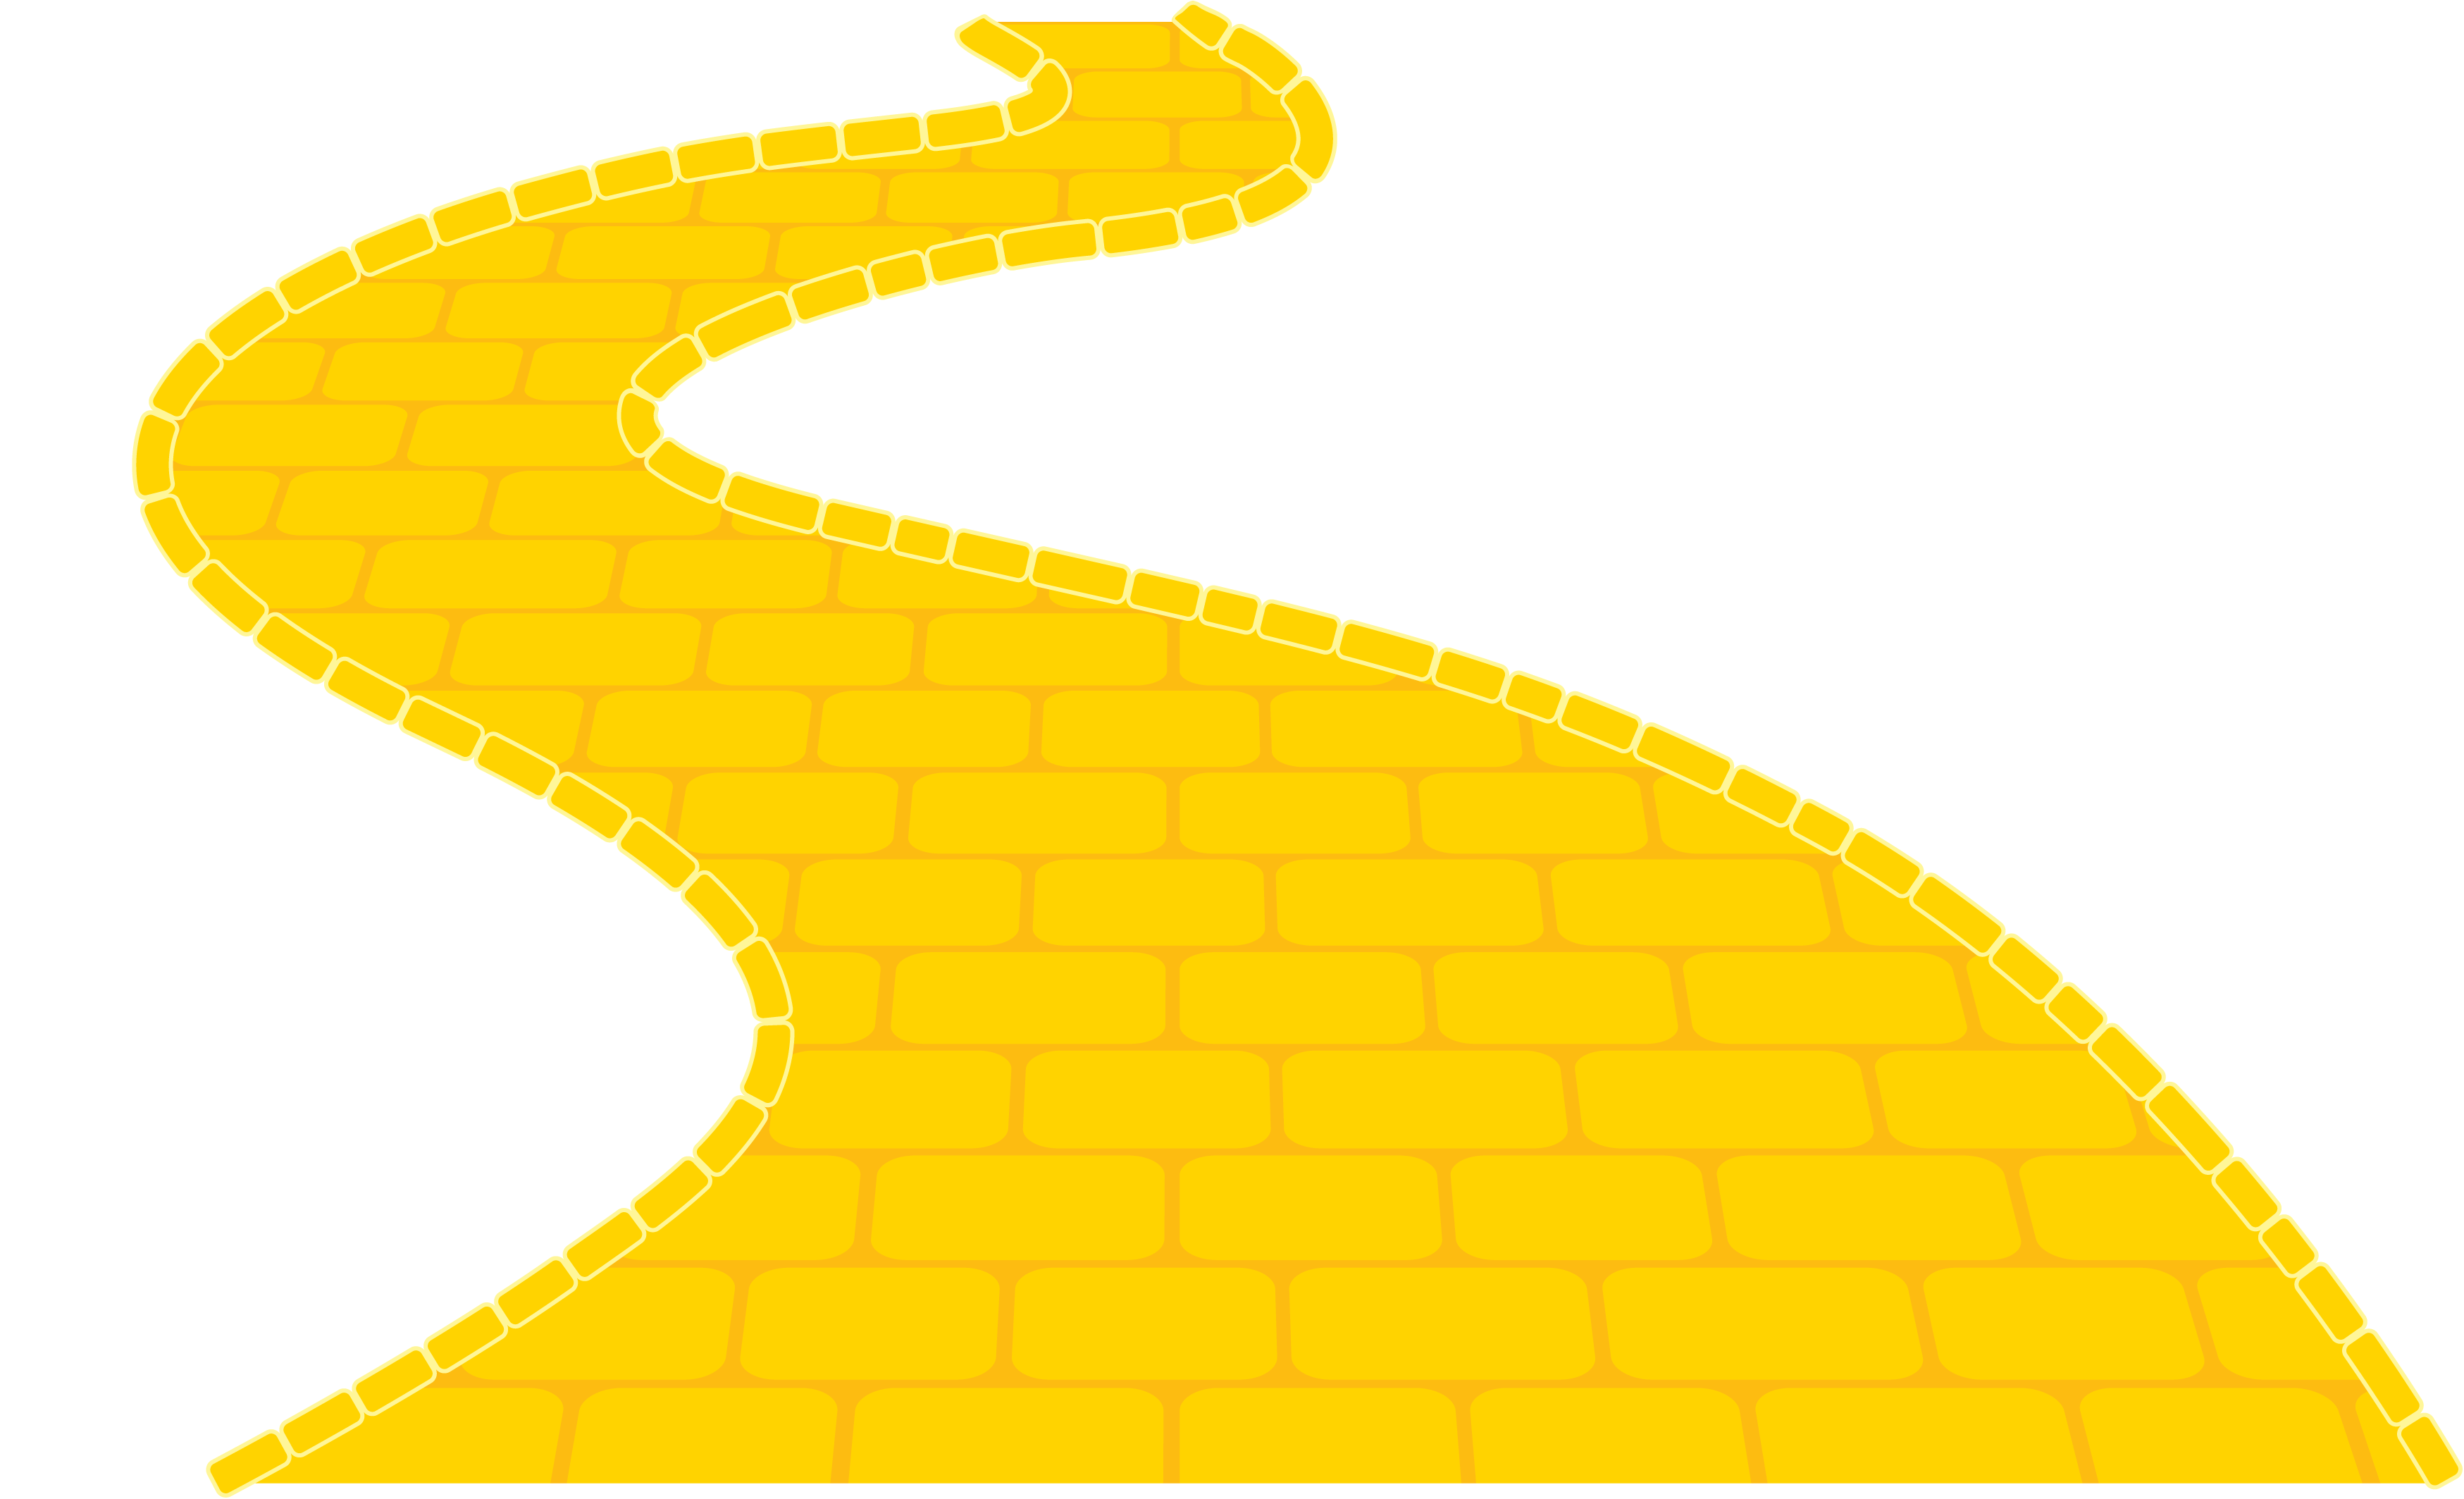 clipart free download Pleasant Design Yellow Brick Road Clipart Clip Art Images